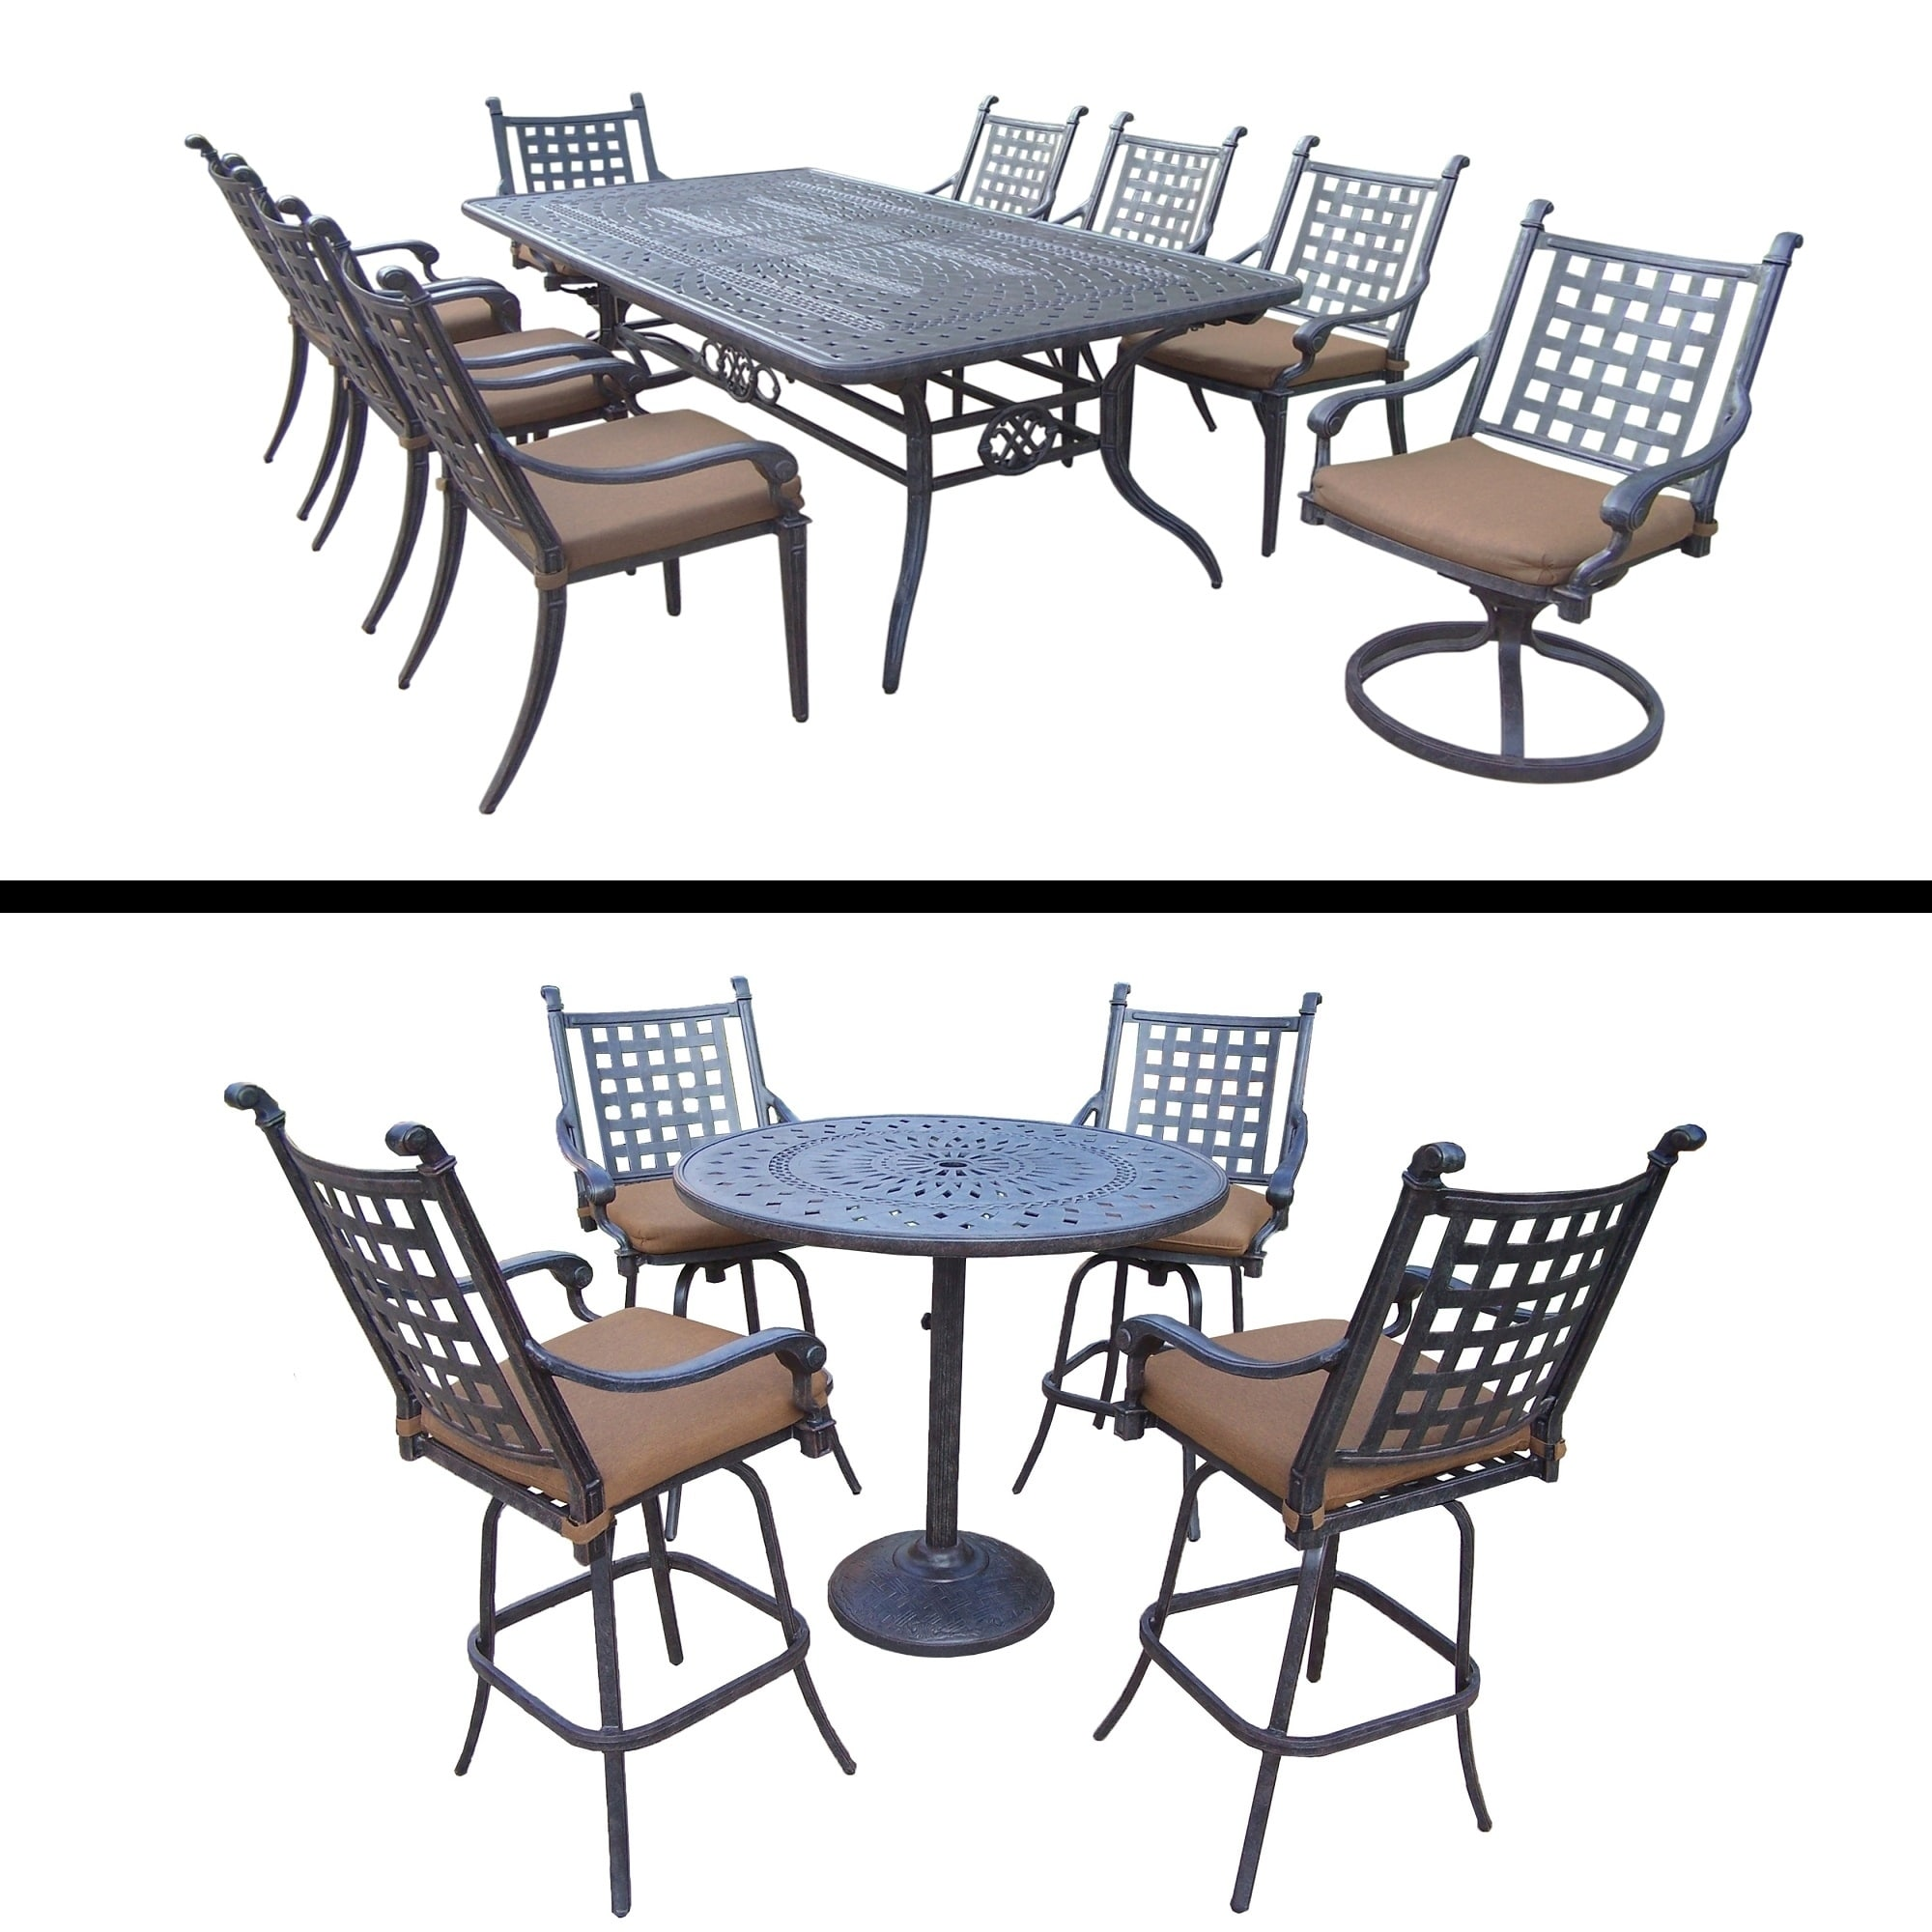 Oakland Living 5 Pc Bar Set with 4 Swivel Bar Stools and 9 Pc Dining Room Set with Extendable Table, 6 Chairs, 2 Swivel by Overstock